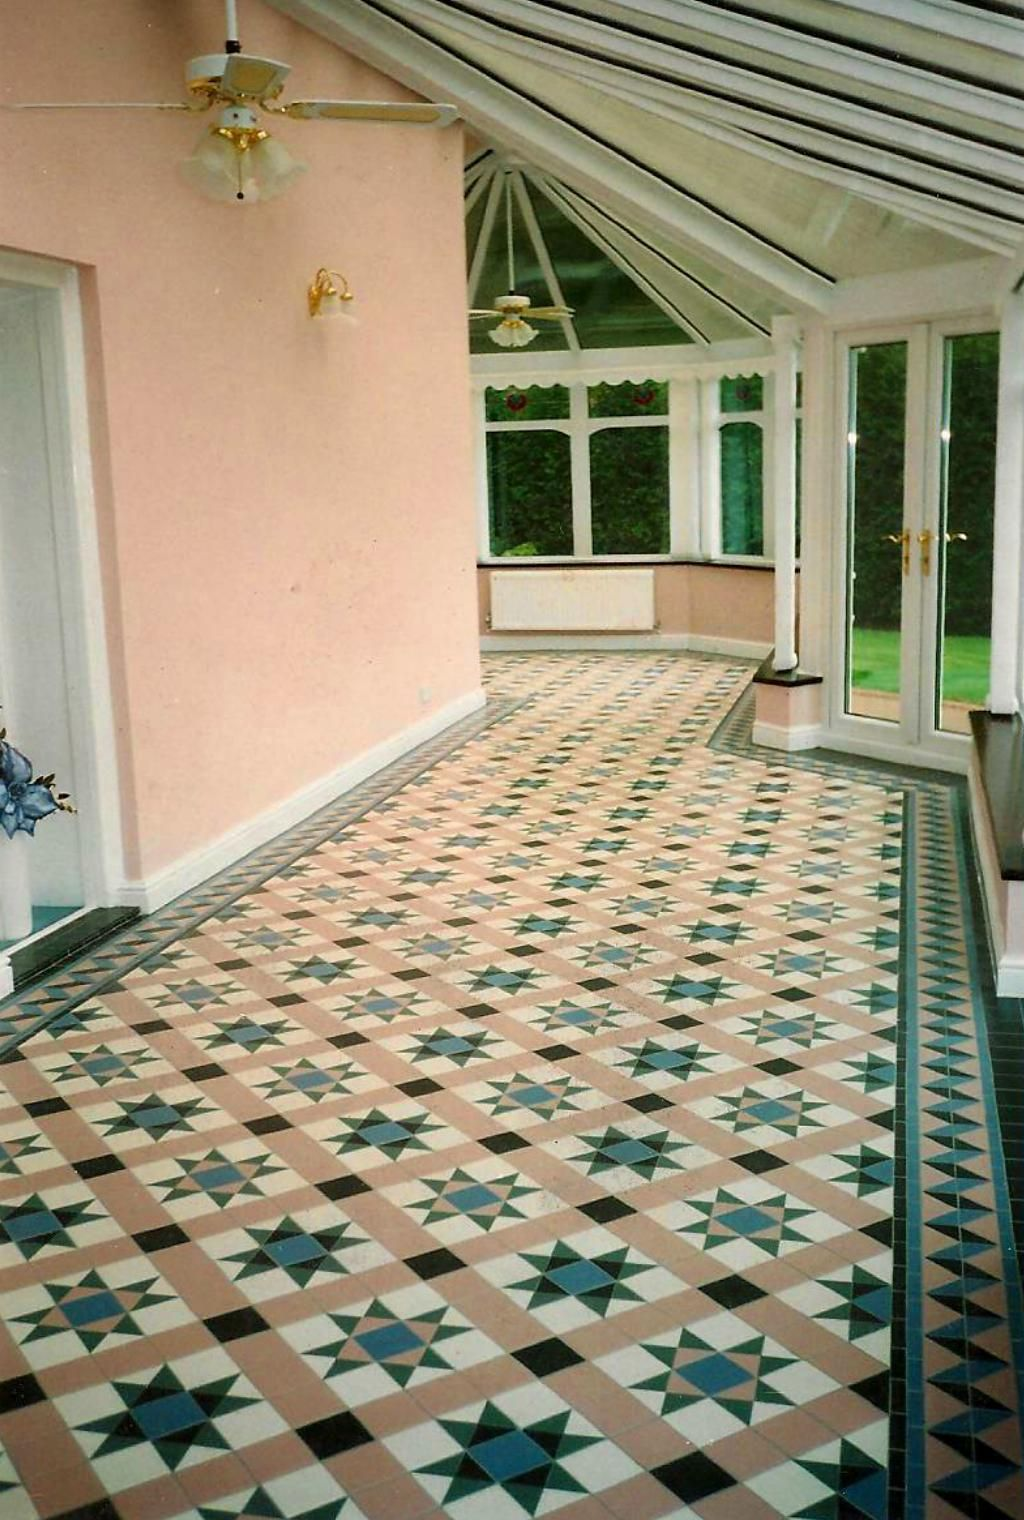 Stunning victorian geometric tiled floor in this superb conservatory stunning victorian geometric tiled floor in this superb conservatory dailygadgetfo Image collections